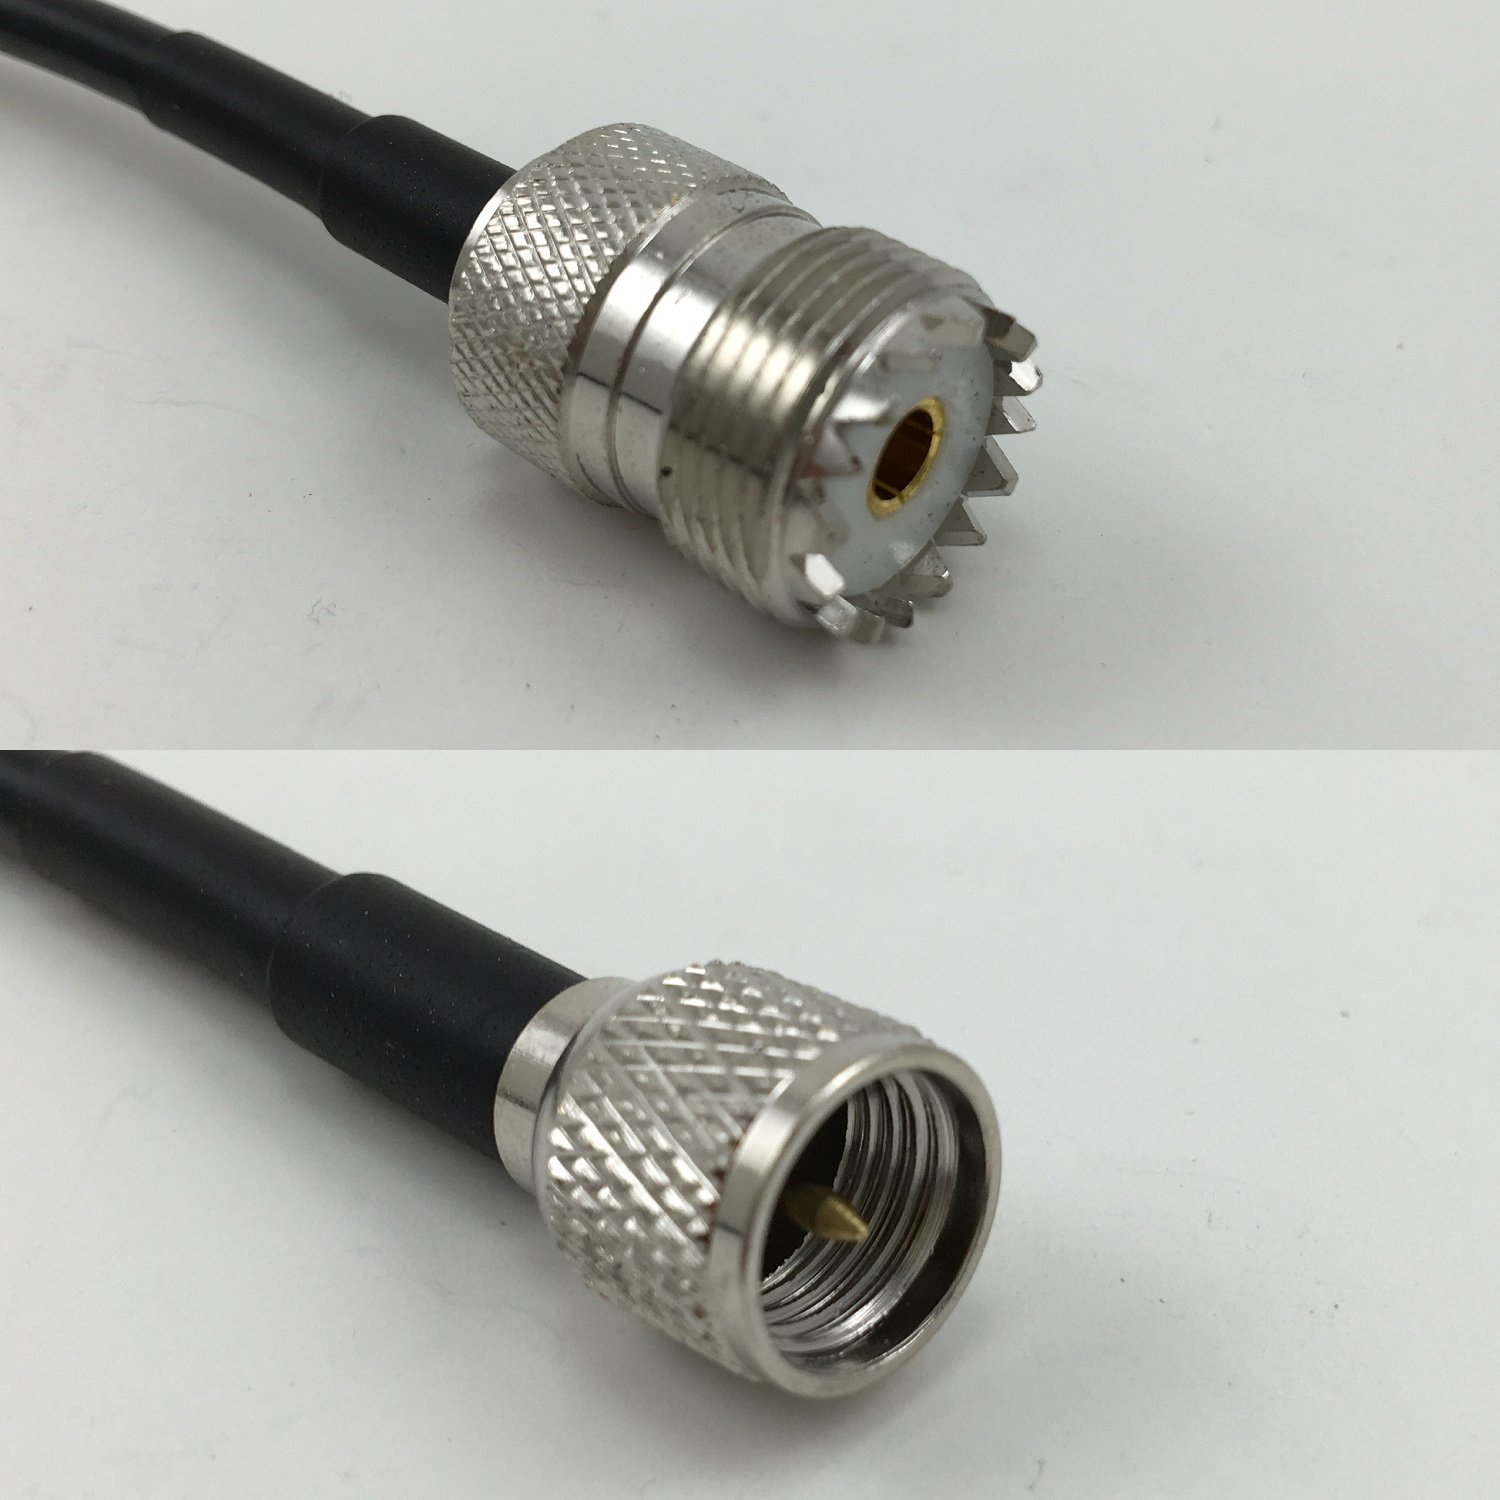 RG58 PL259 UHF MALE to SO239 FEMALE BULKHEAD Coaxial RF Pigtail Cable USA